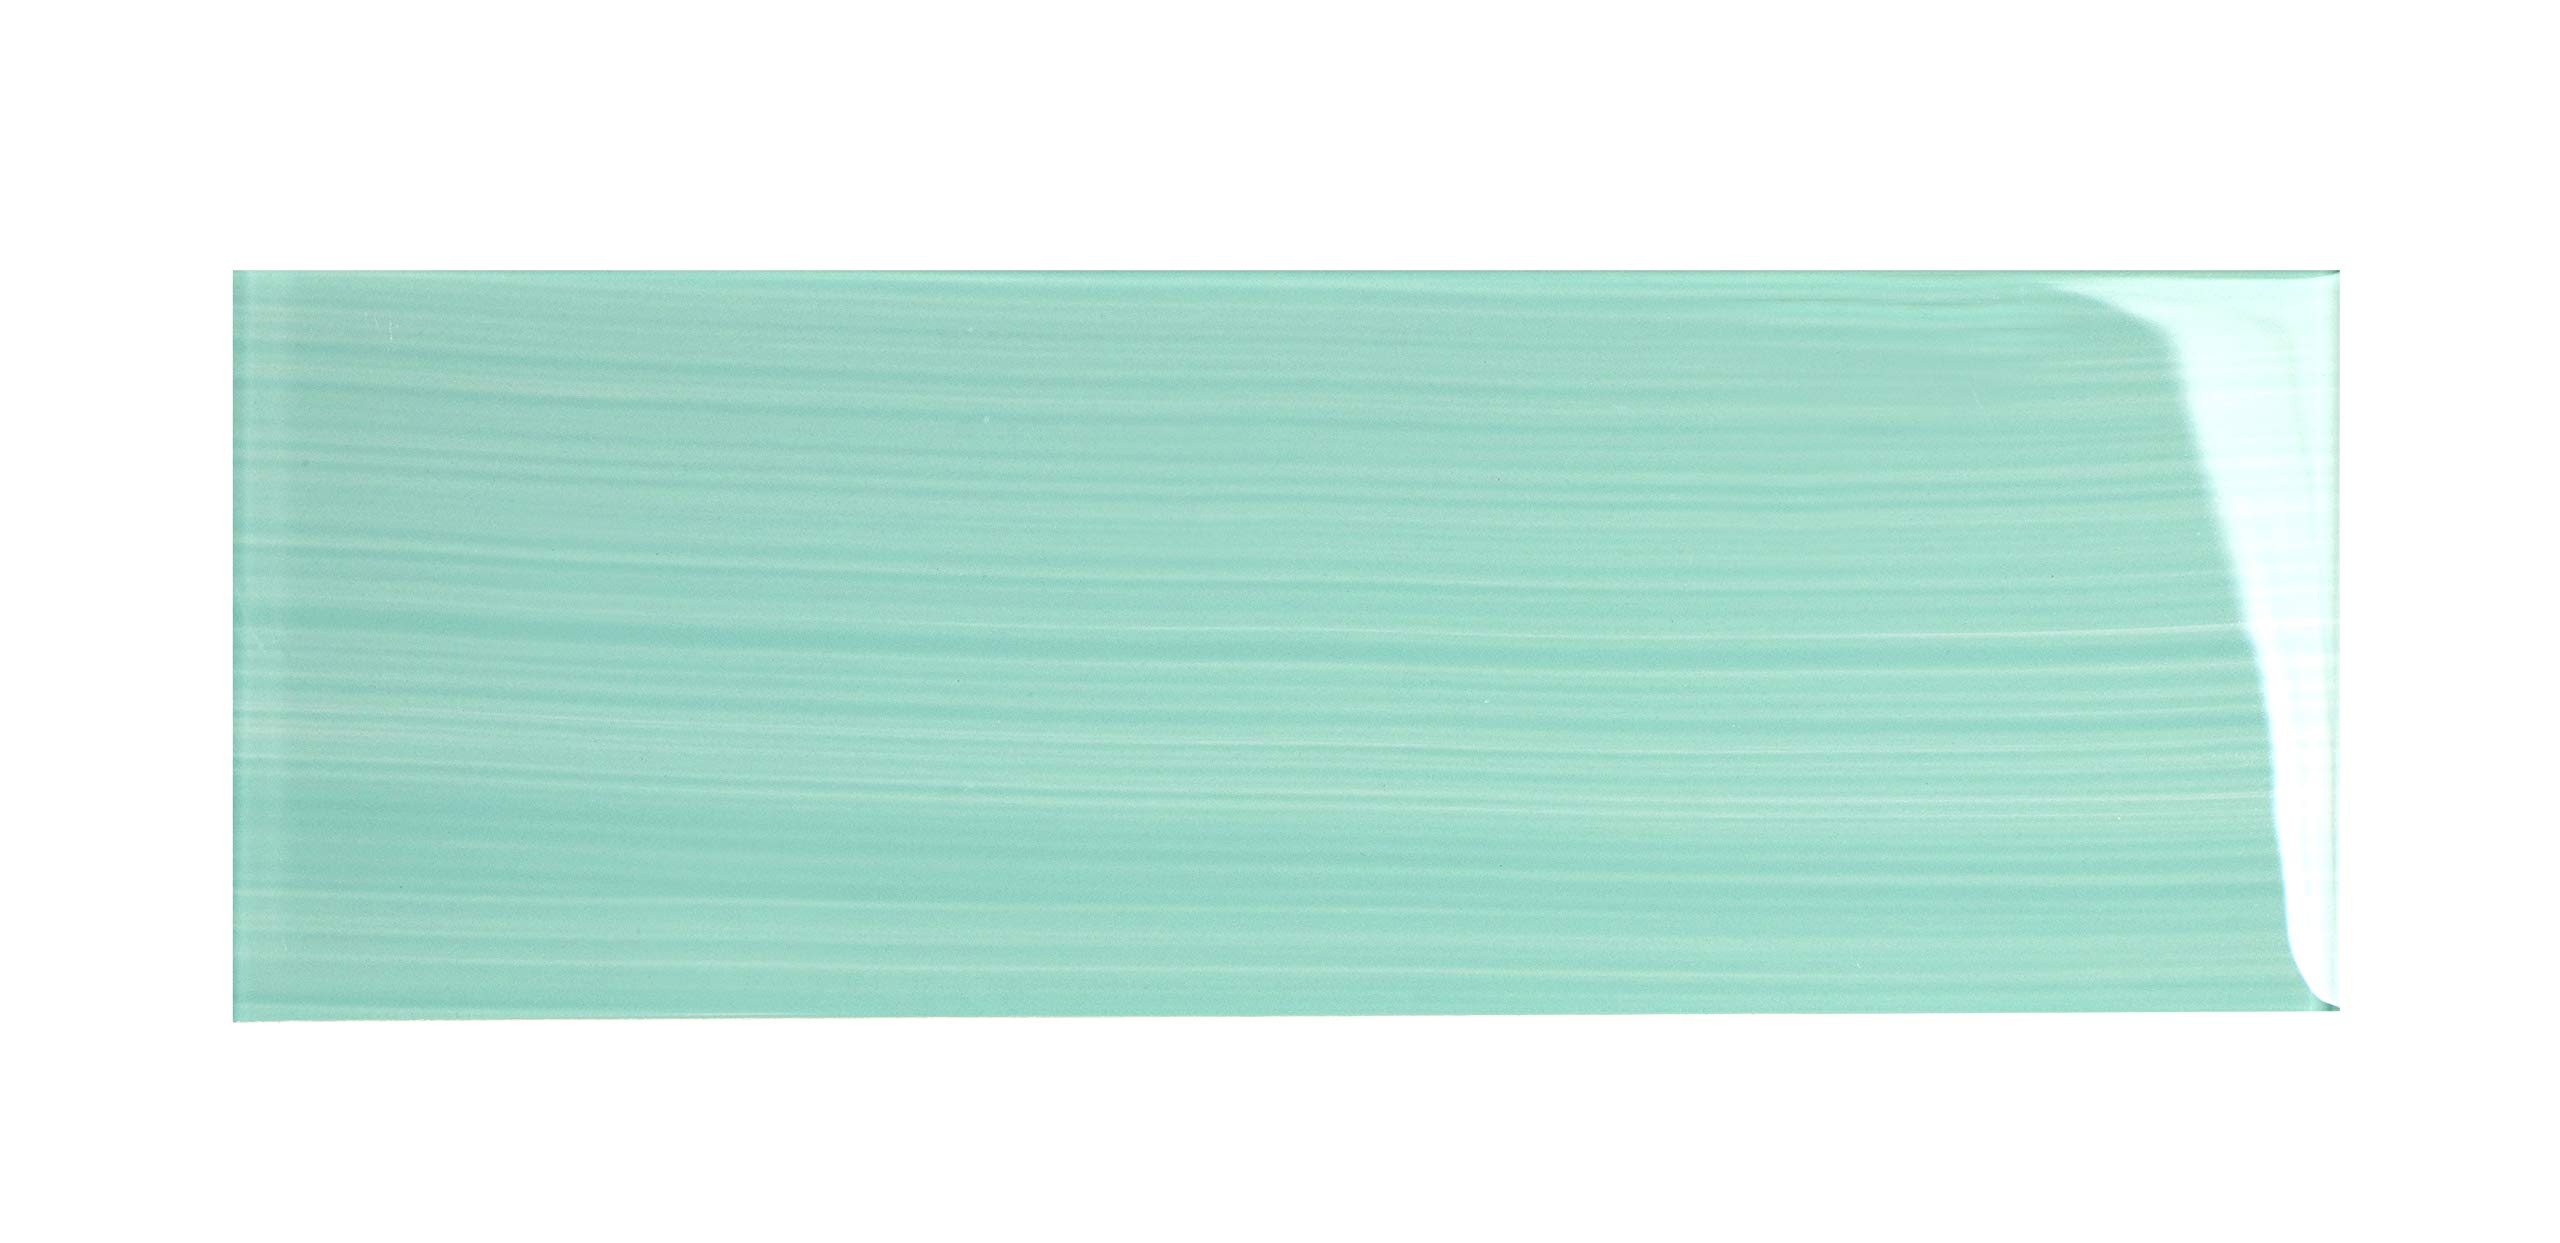 Glass Subway Backsplash Tile Bambu Hand Painted Series for Kitchen and Bathroom by WS Tiles - WST-06PH (4'' x 12'' Individual 5 SqFt, Light Teal)